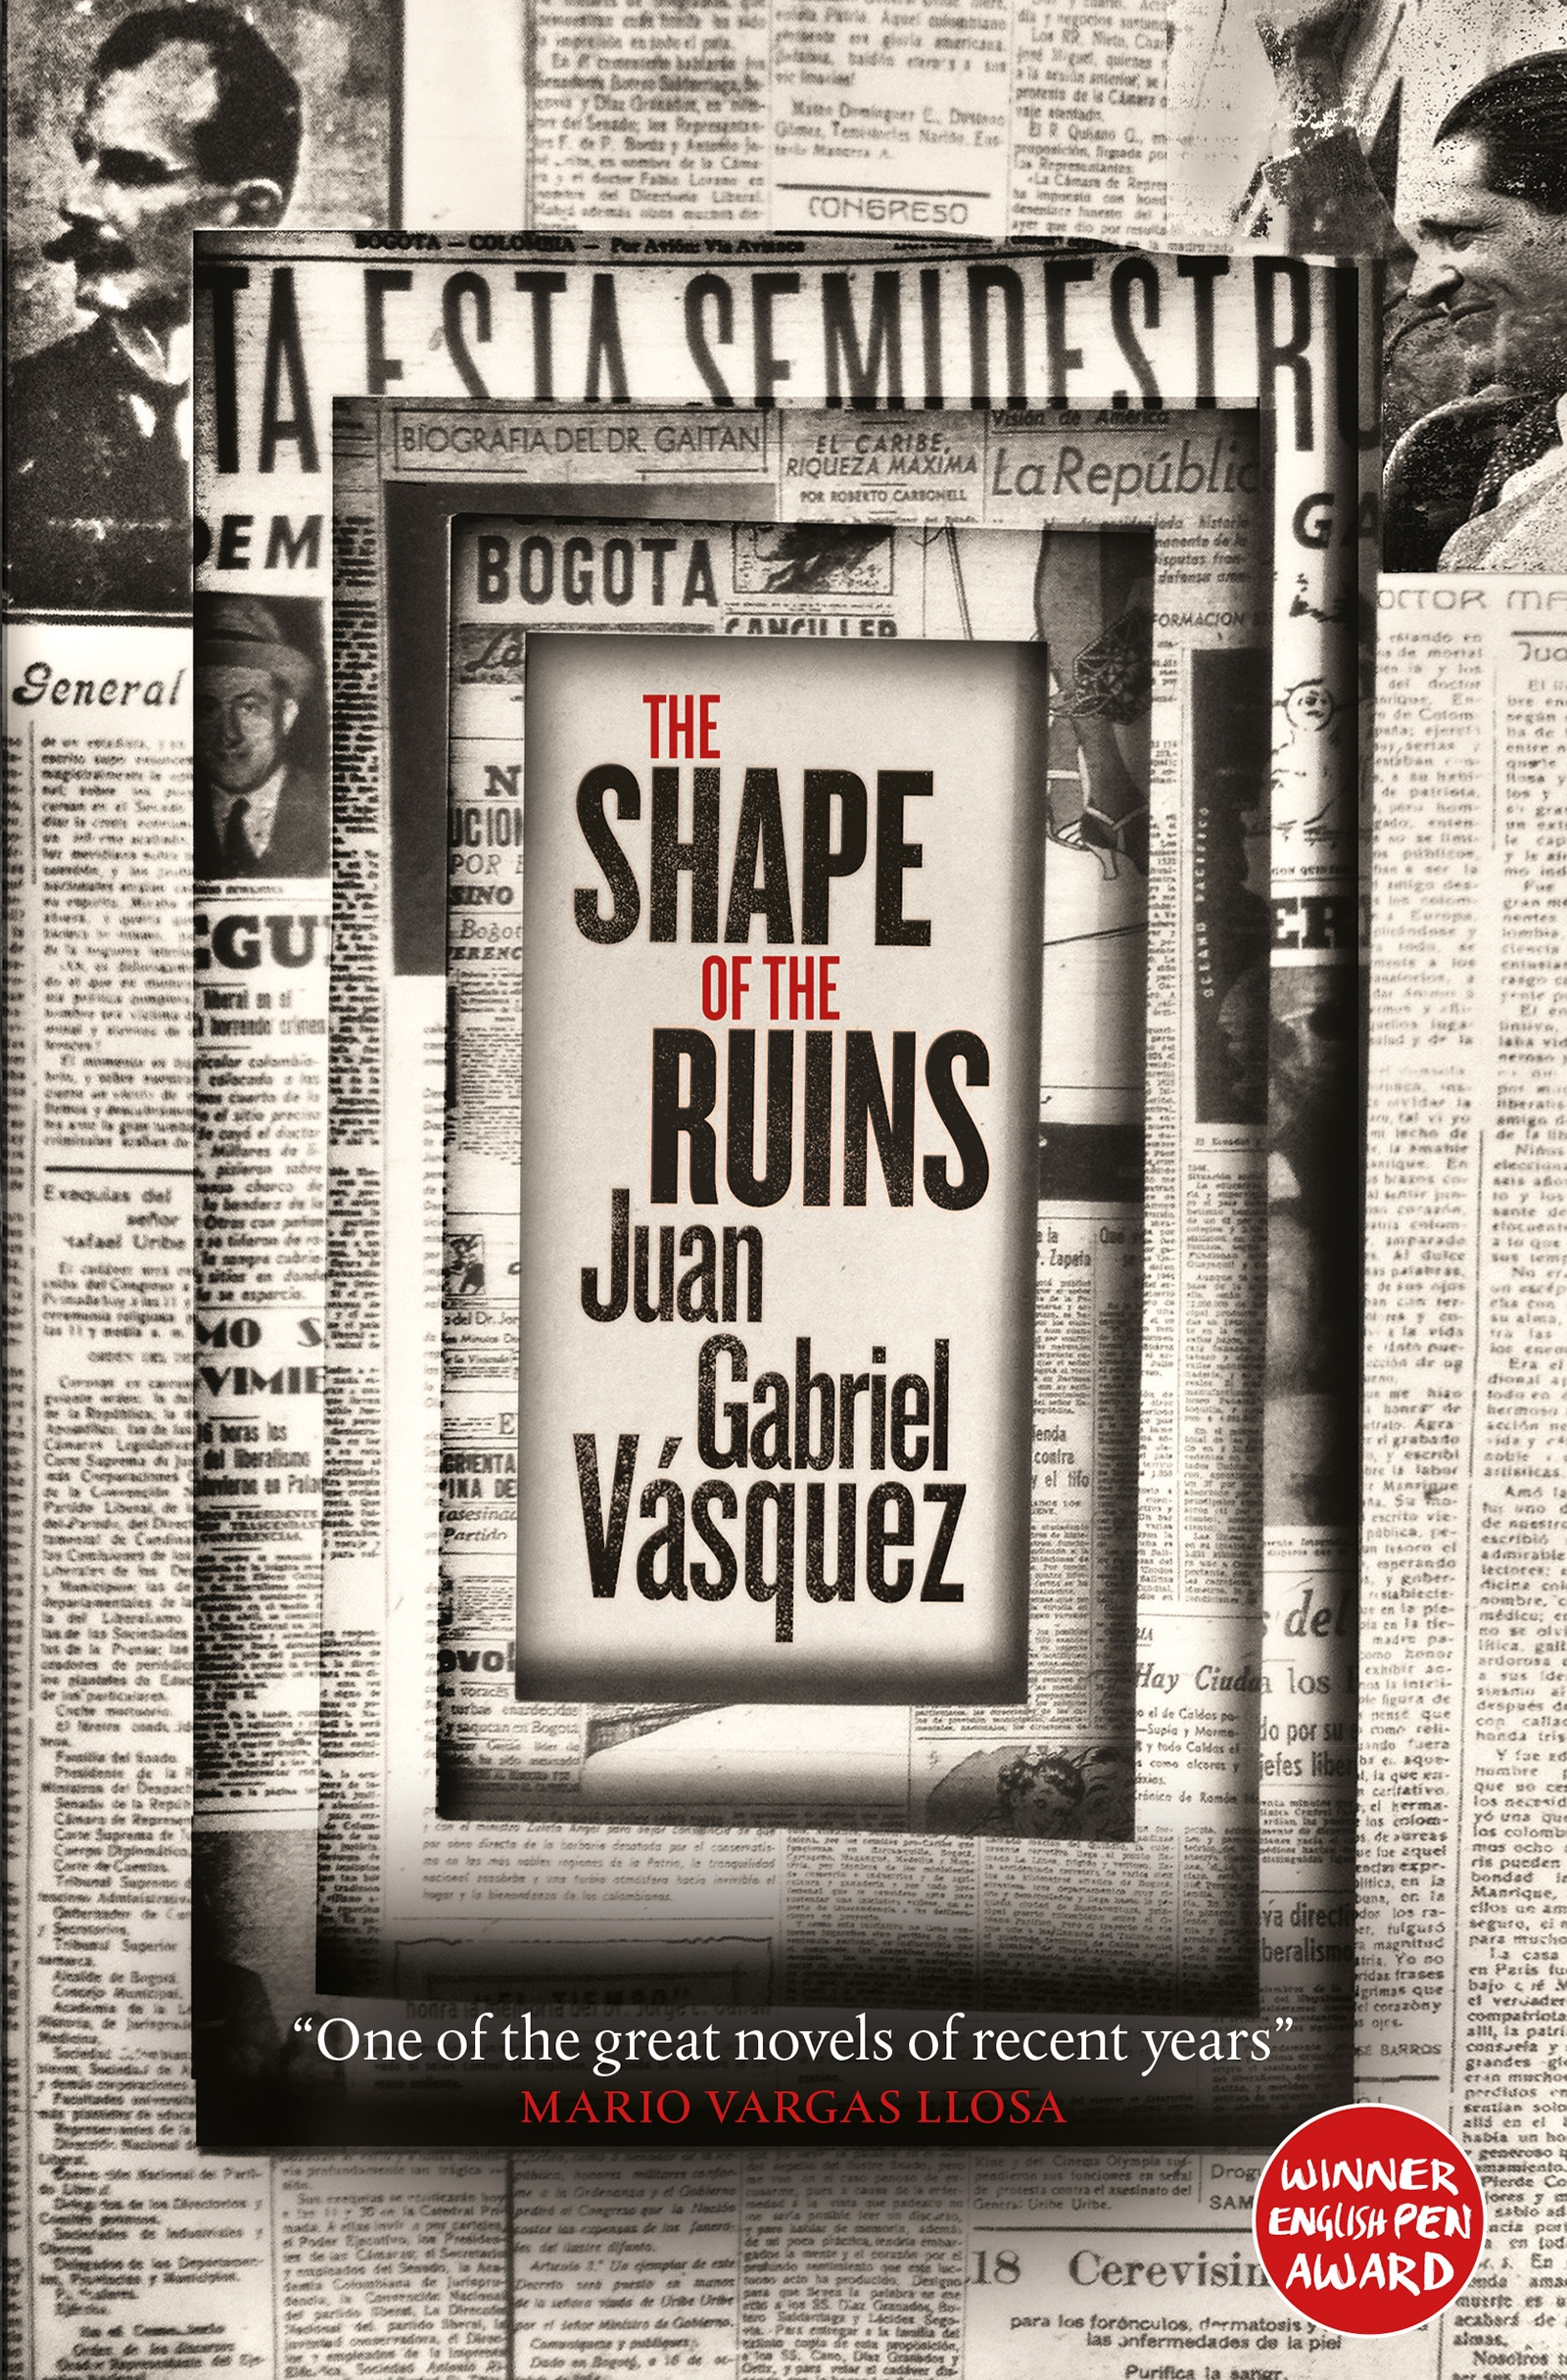 Juan gabriel va squez   the shape of the ruins